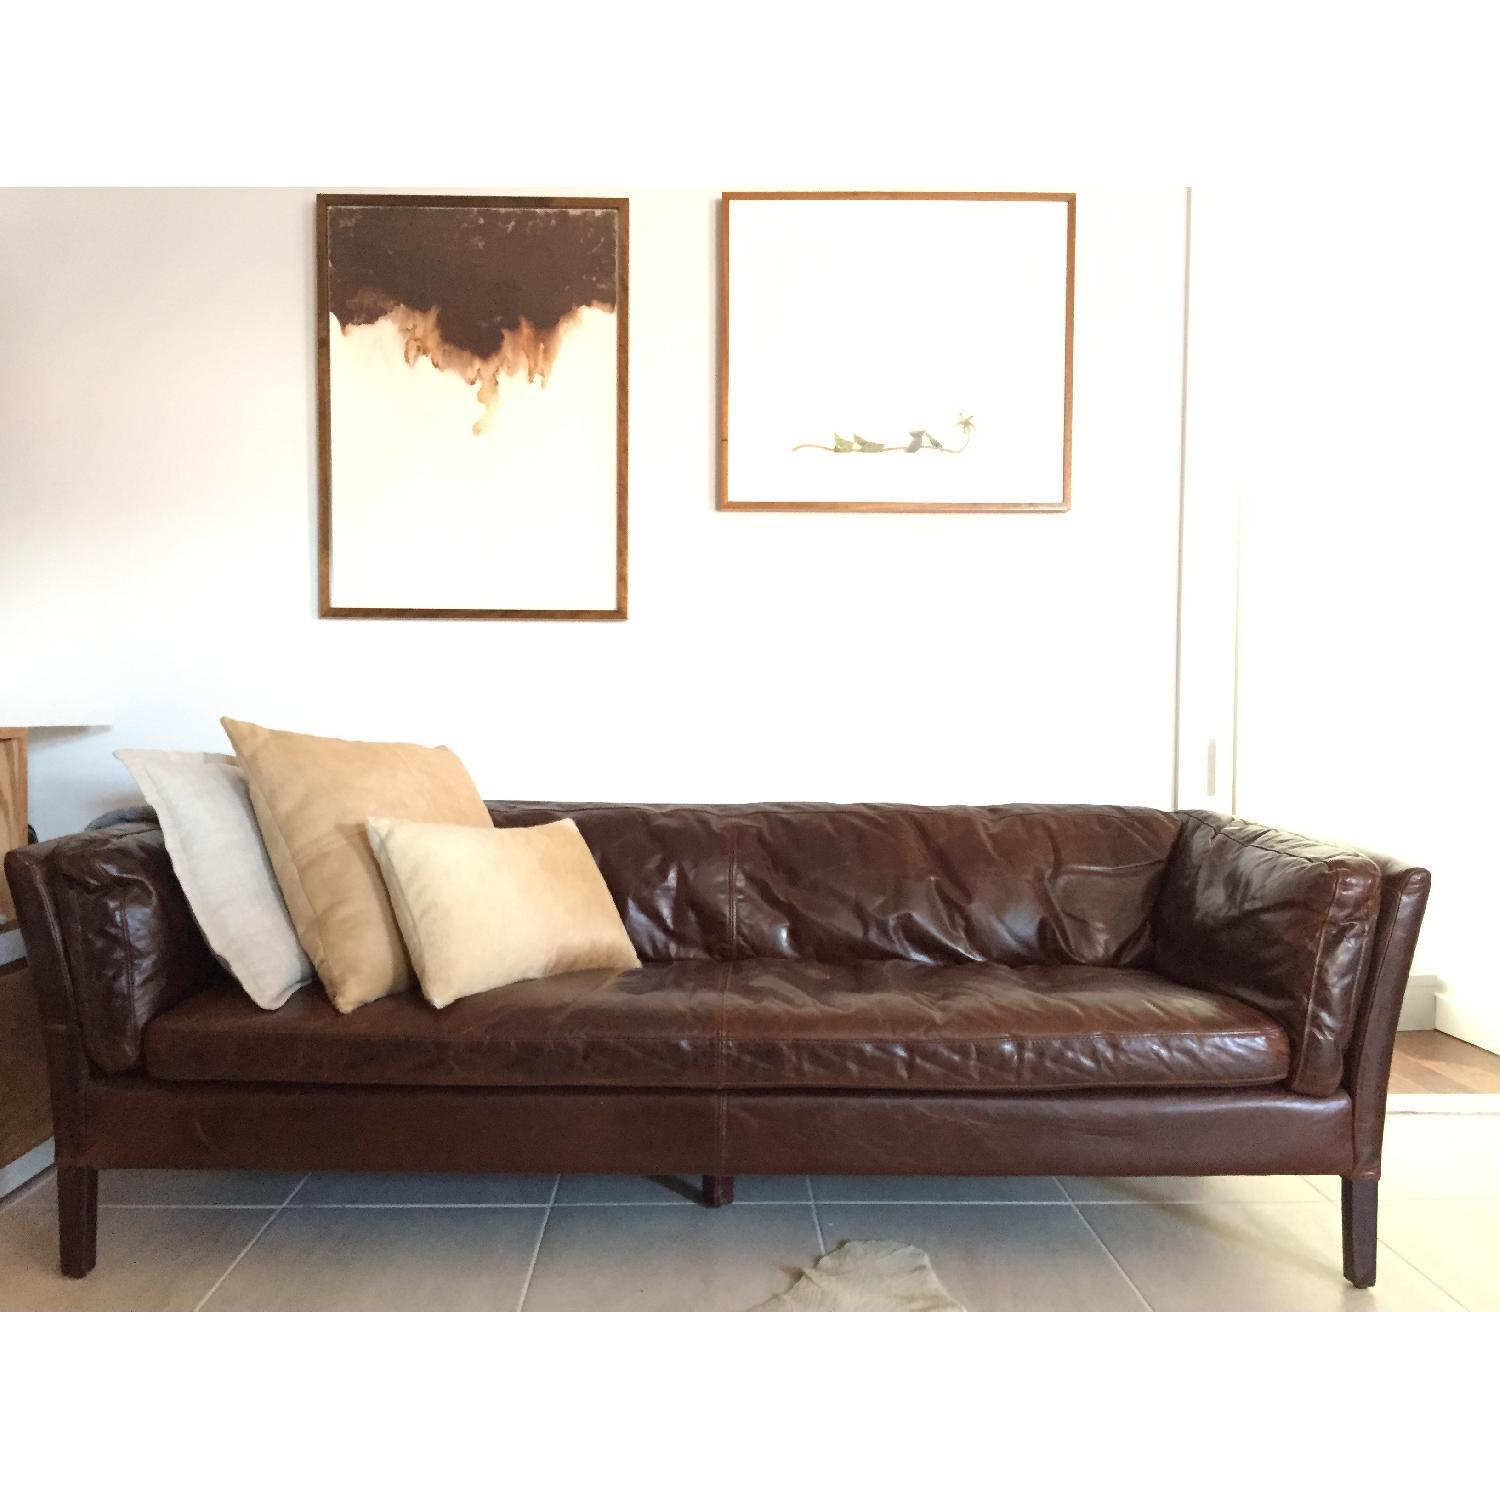 Restoration Hardware Leather Chairs Restoration Hardware Sorensen Leather Sofa Copy Cat Chic